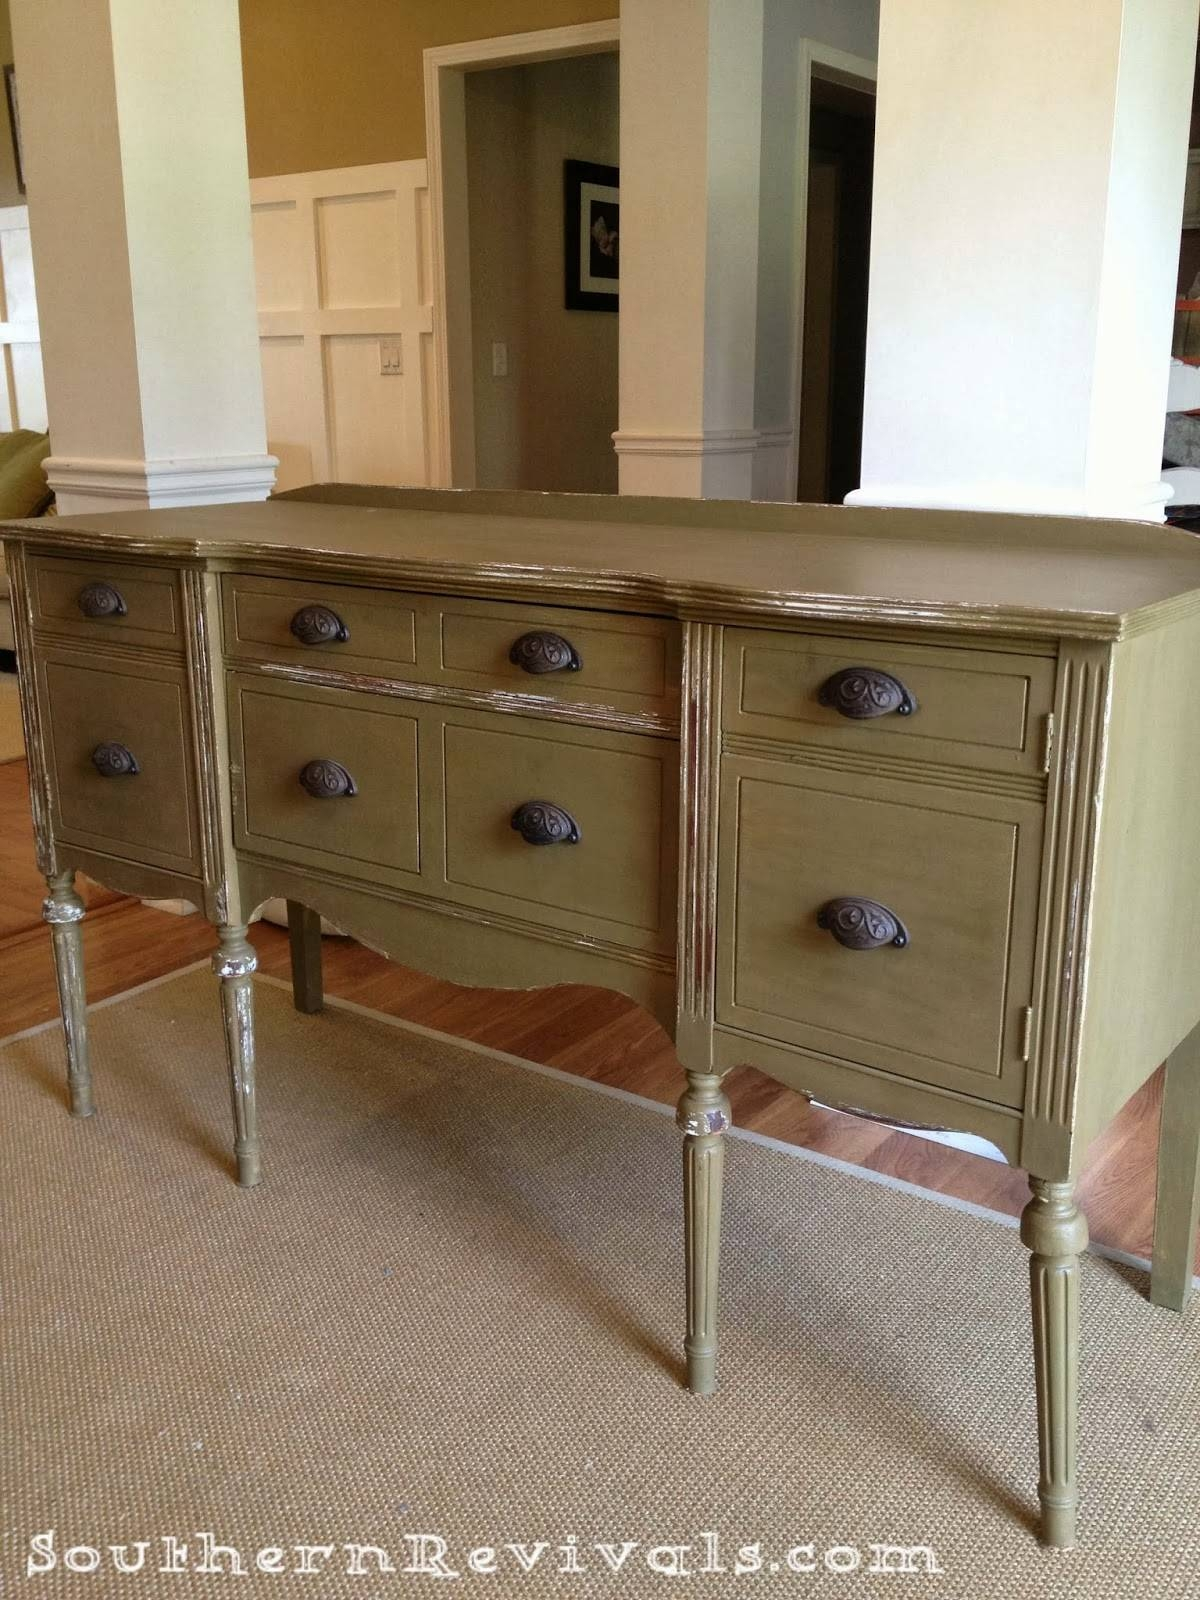 Inspiration about Updating A Vintage Sideboard Buffet With A Pop Of Color – Southern Within Most Up To Date Vintage Sideboards (#10 of 15)